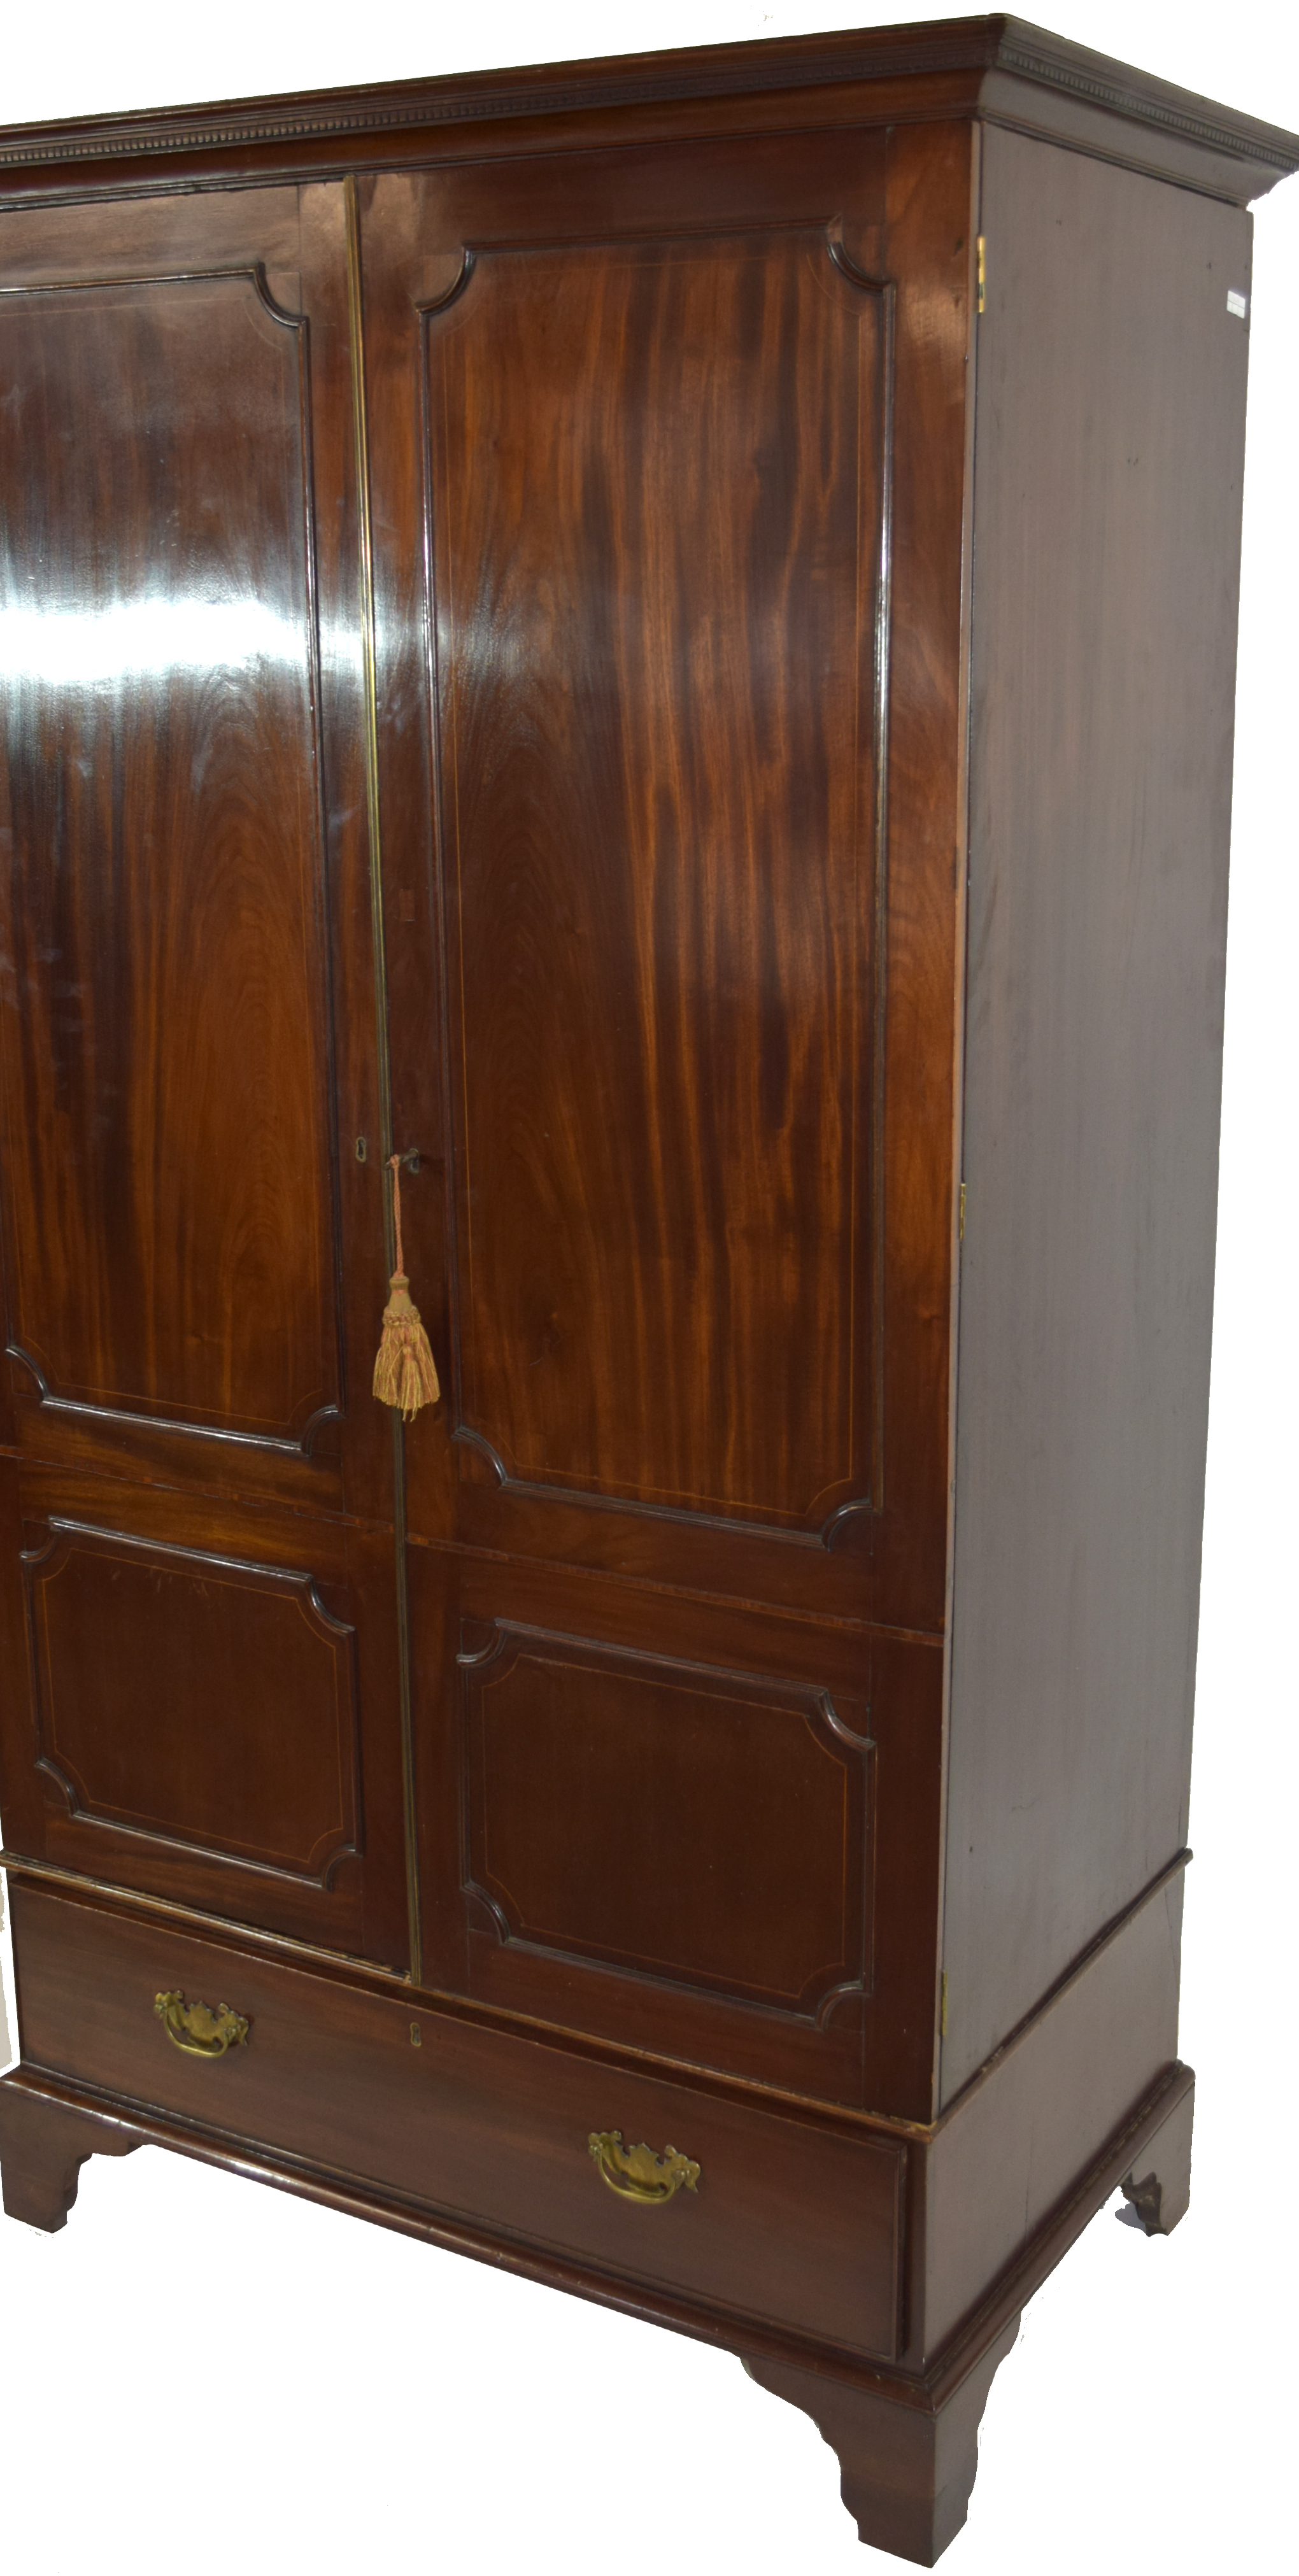 19th century mahogany wardrobe with moulded cornice over two panelled doors and single drawer - Image 2 of 6